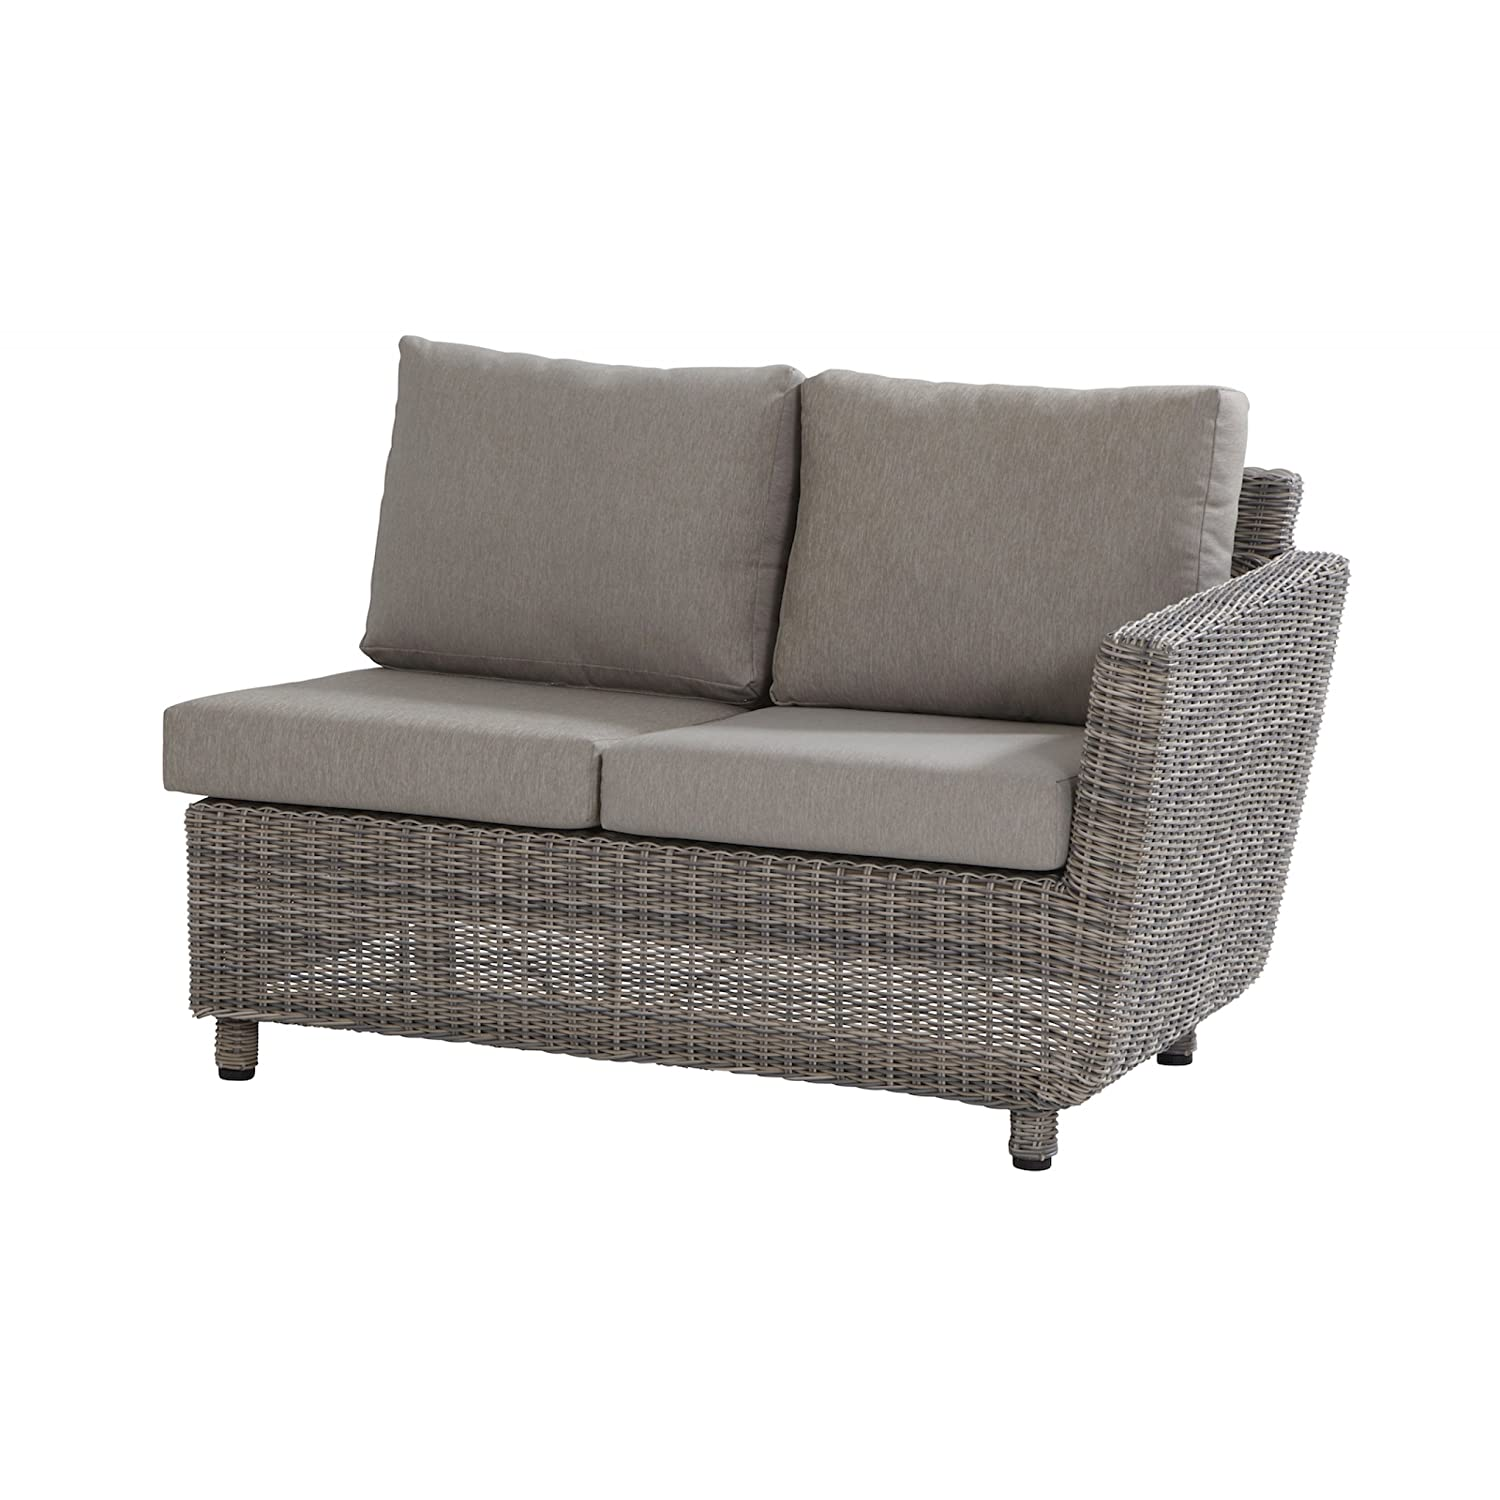 Aqua-Saar Dining Sofa 2 Sitzer Mailand Armlehne links Roca AS36798 bestellen